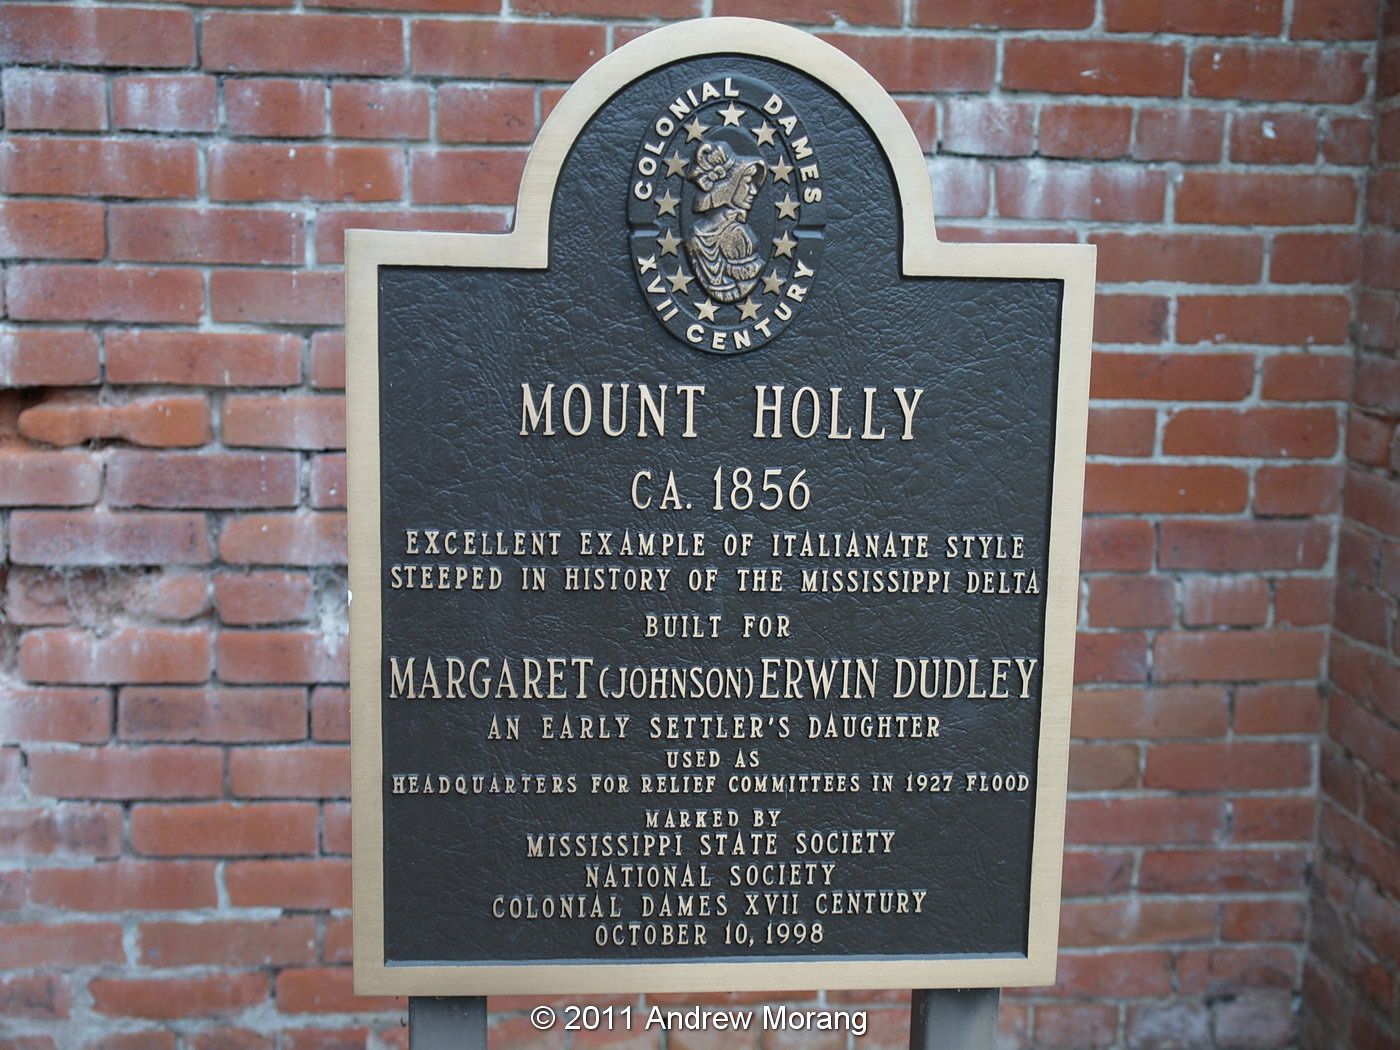 Mississippi washington county chatham - Ms Preservation Wrote About The History Of Mt Holly Recommended Reading As Are All The Interesting Posts Dealing With Mississippi S Architecture And